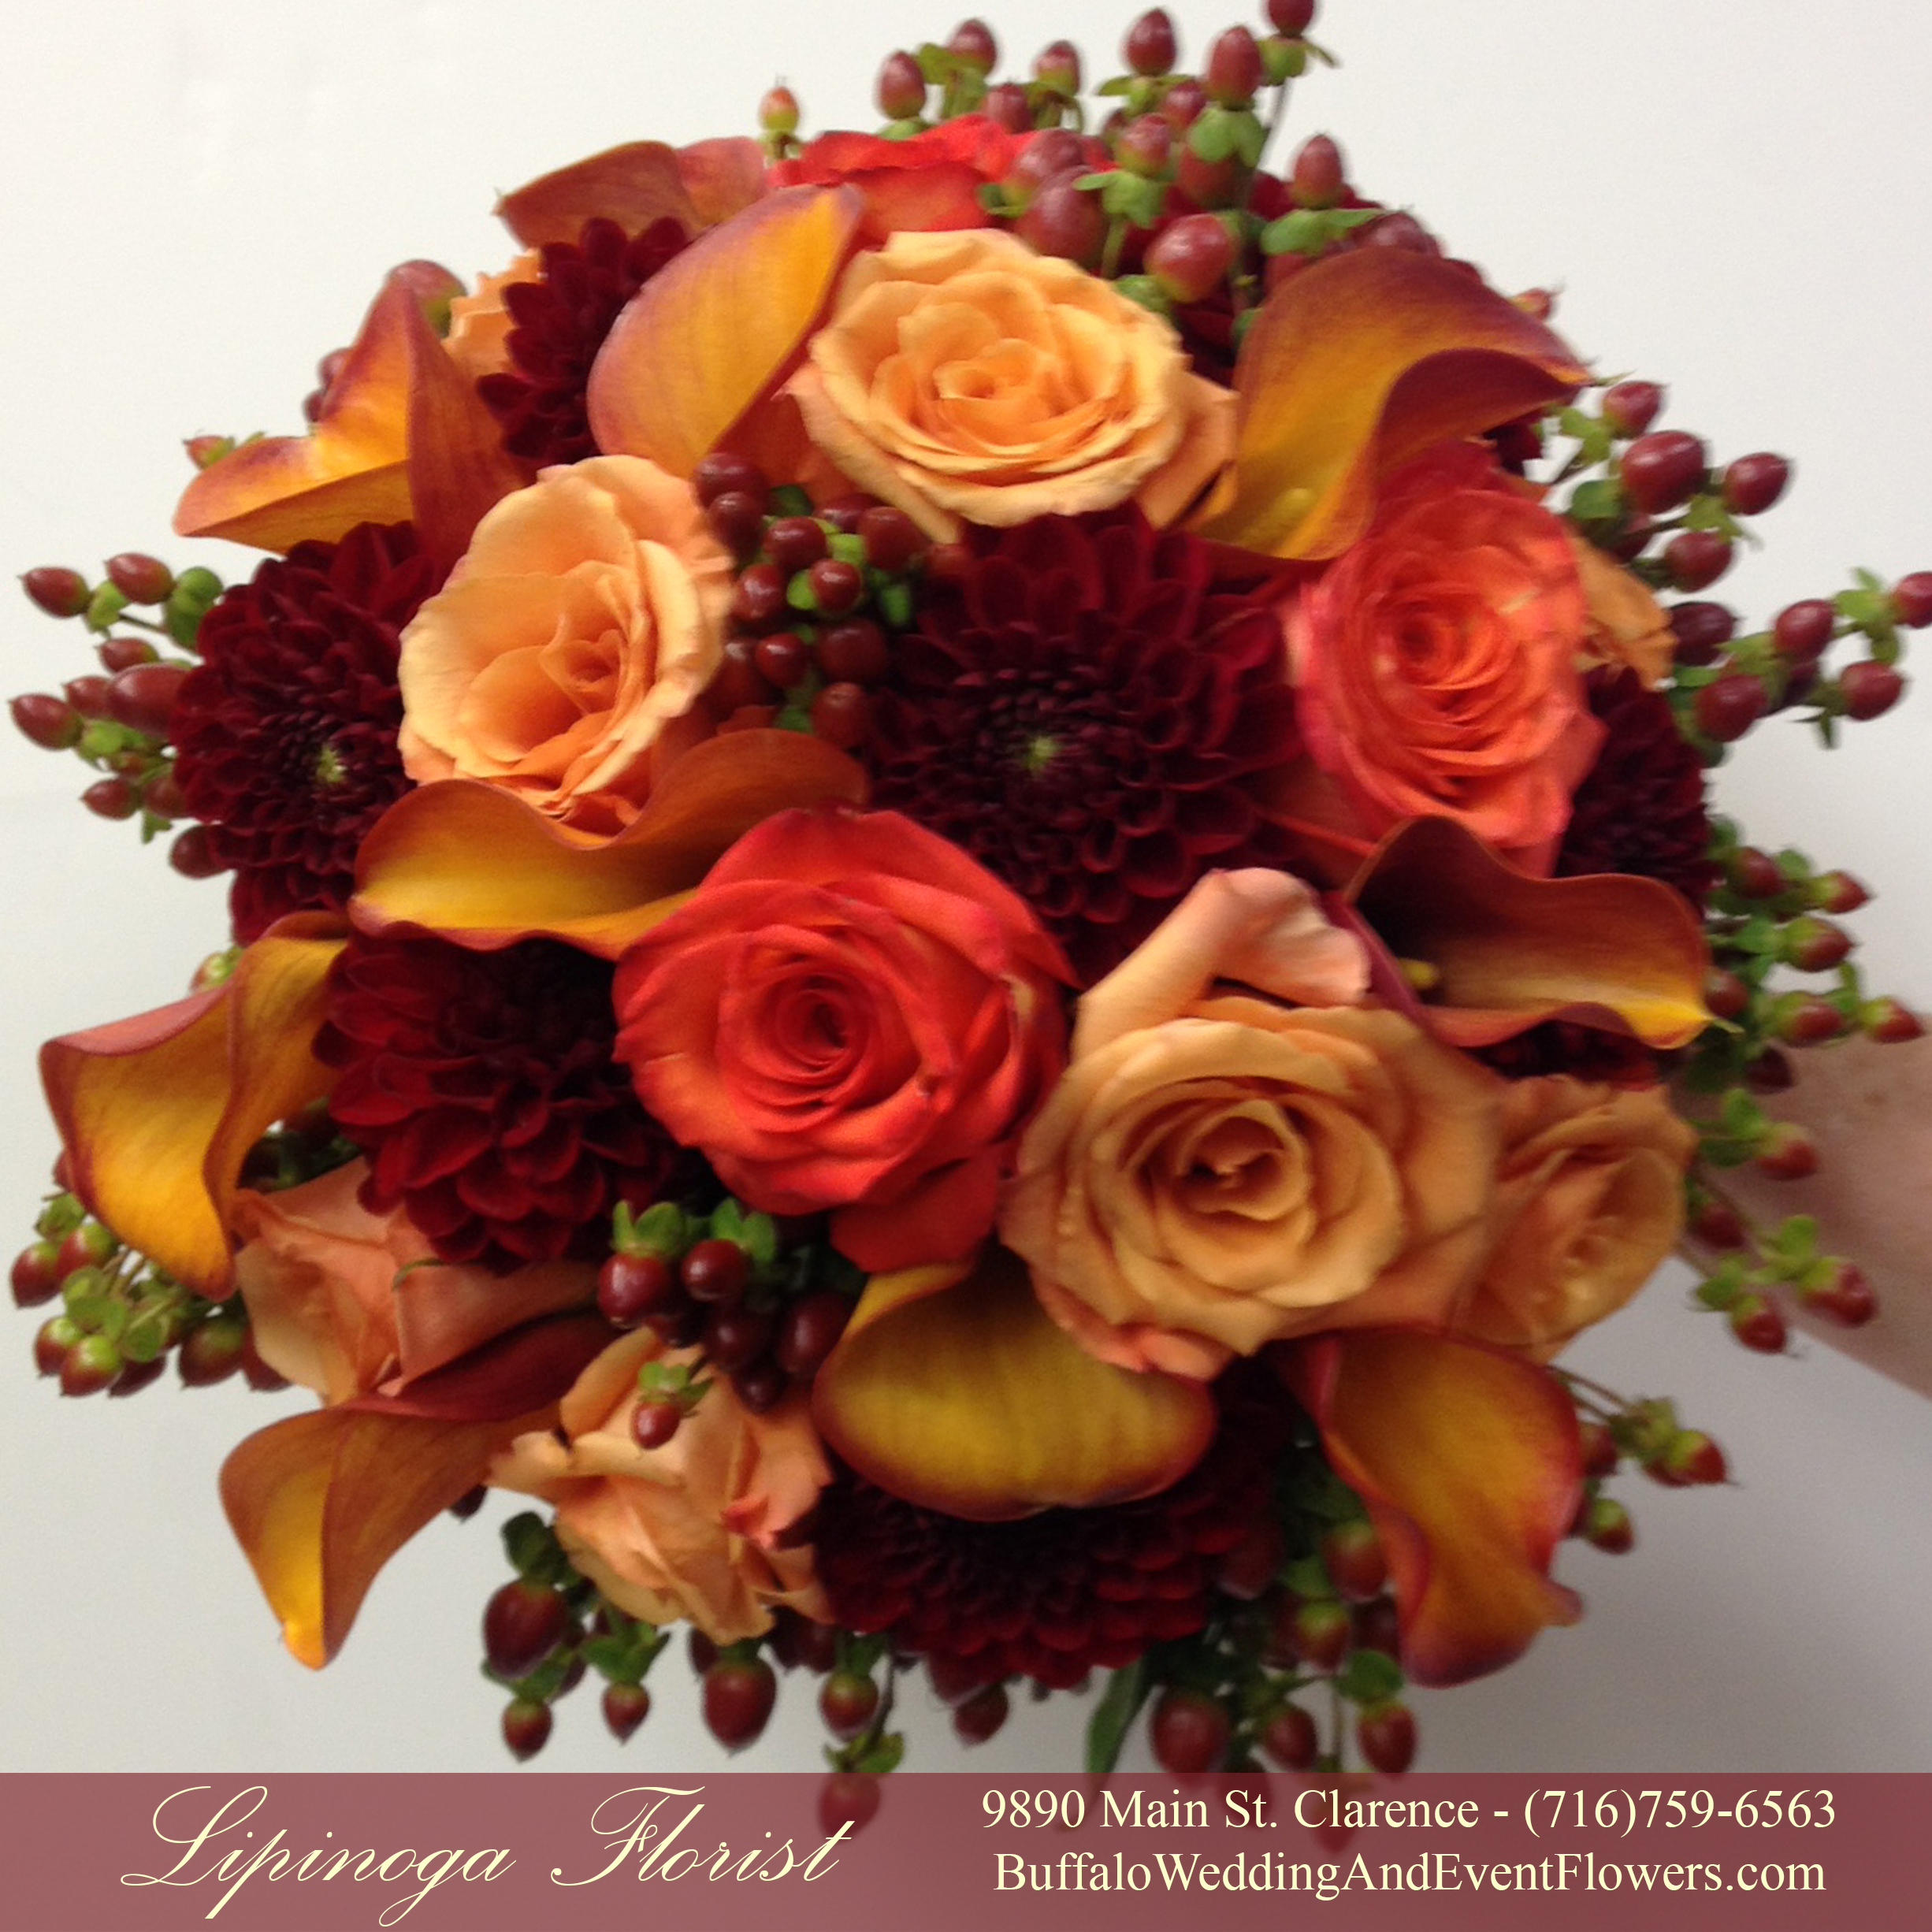 Fall Bridal Bouquets Buffalo Wedding Event Flowers By Lipinoga